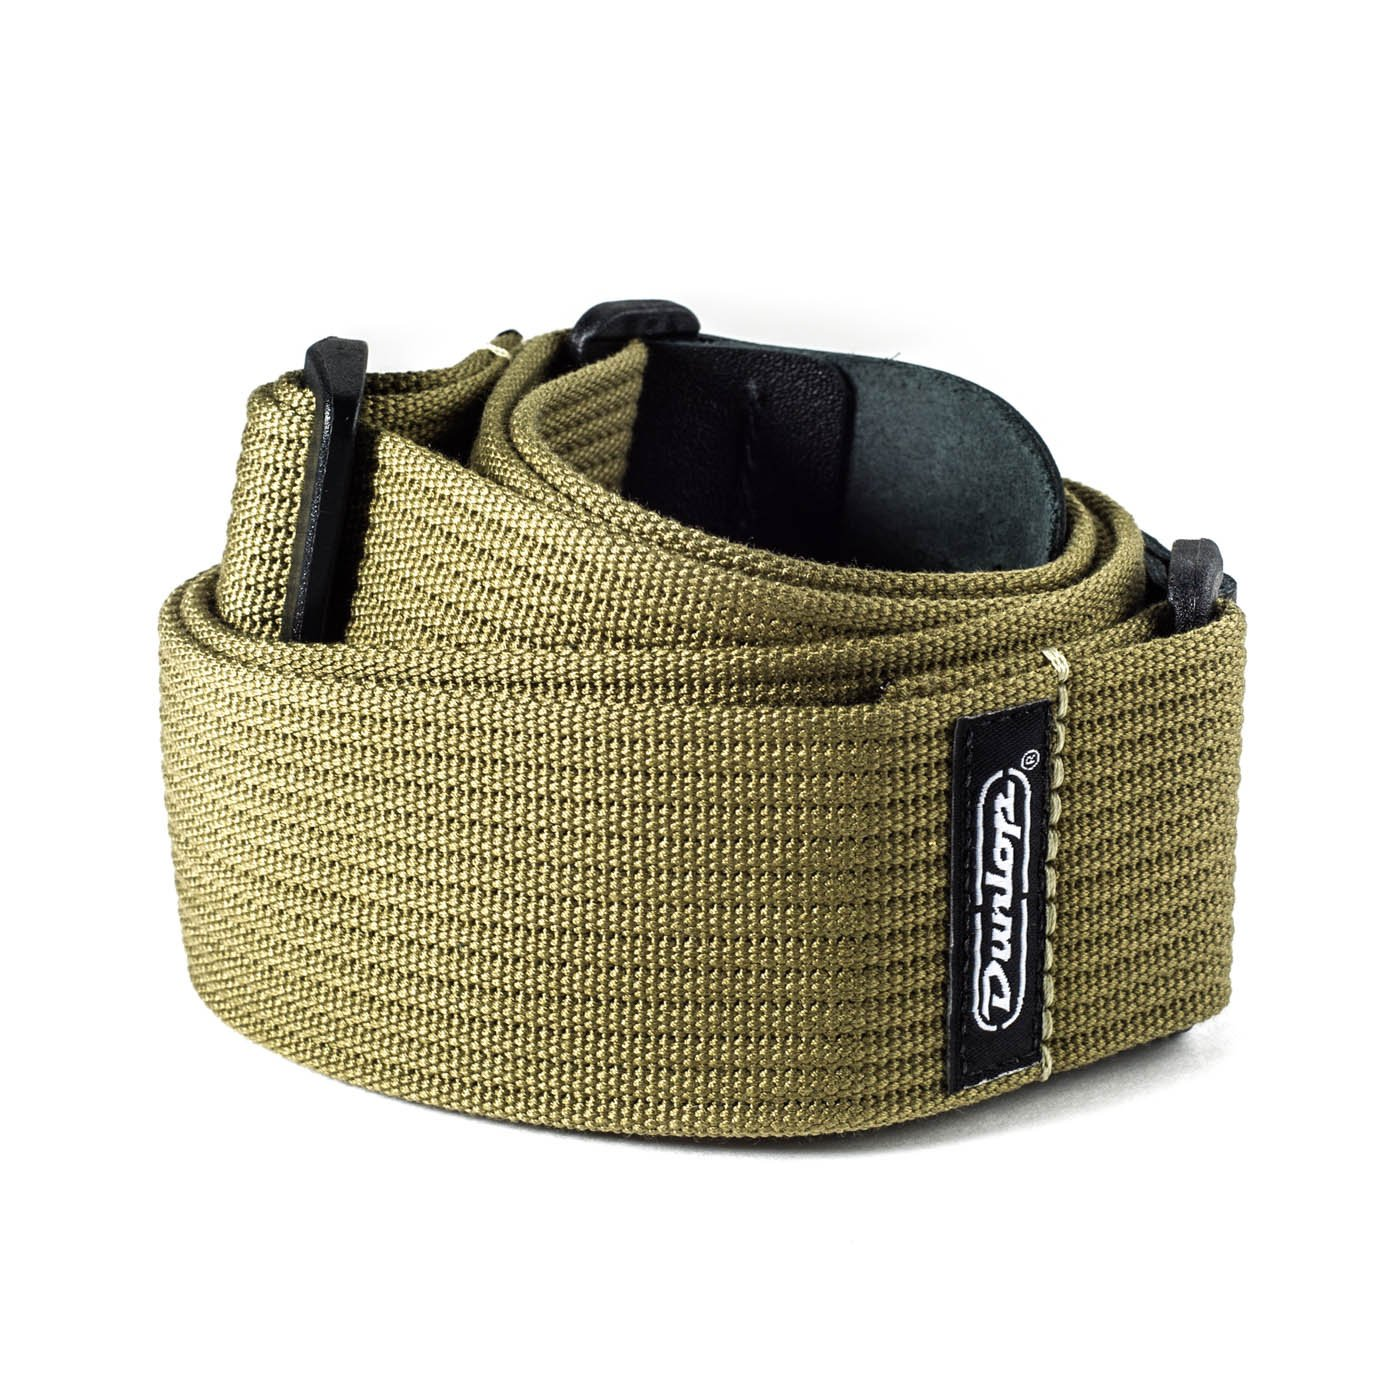 Dunlop Ribbed Cotton Strap - Olive Green